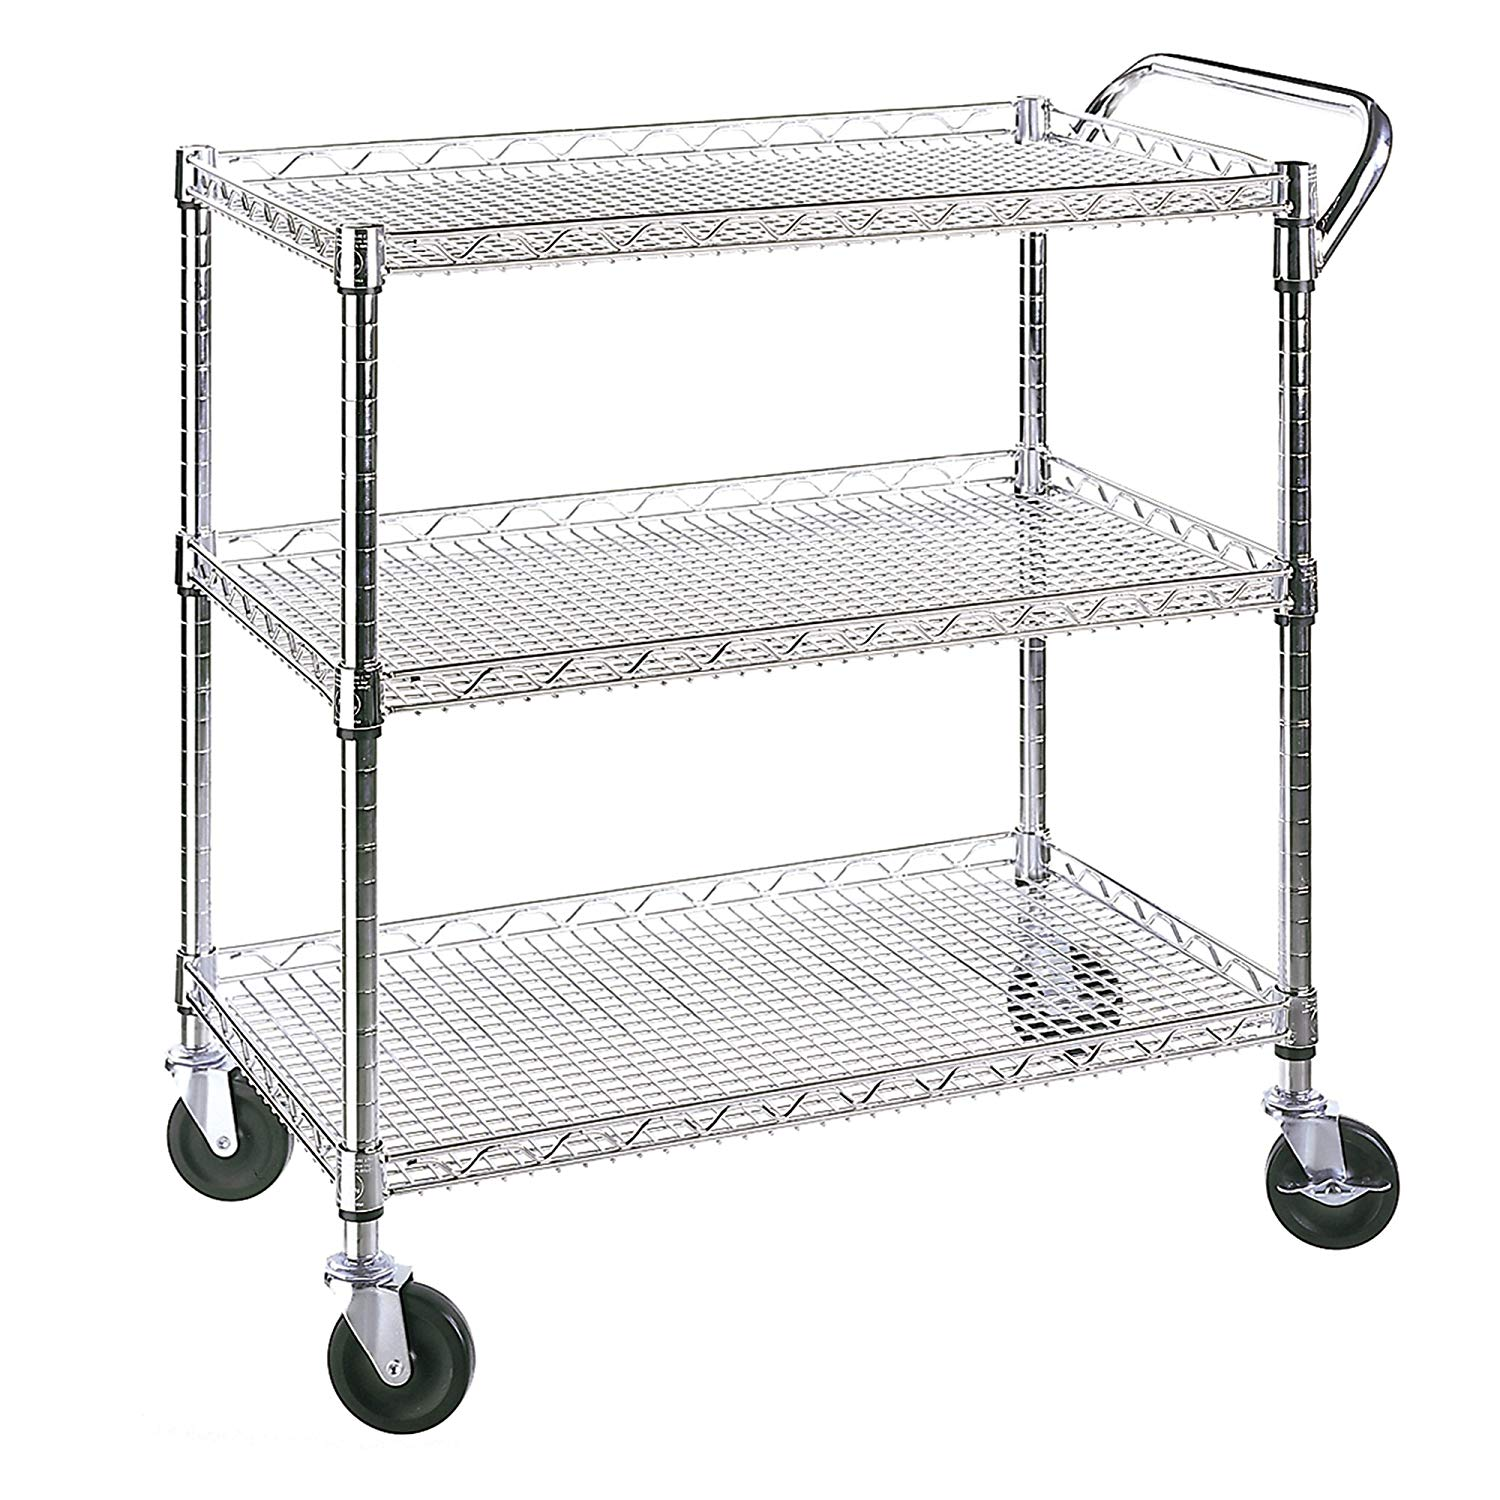 3-Tier Commercial Rolling Utility Cart, UltraZinc by Seville Classics